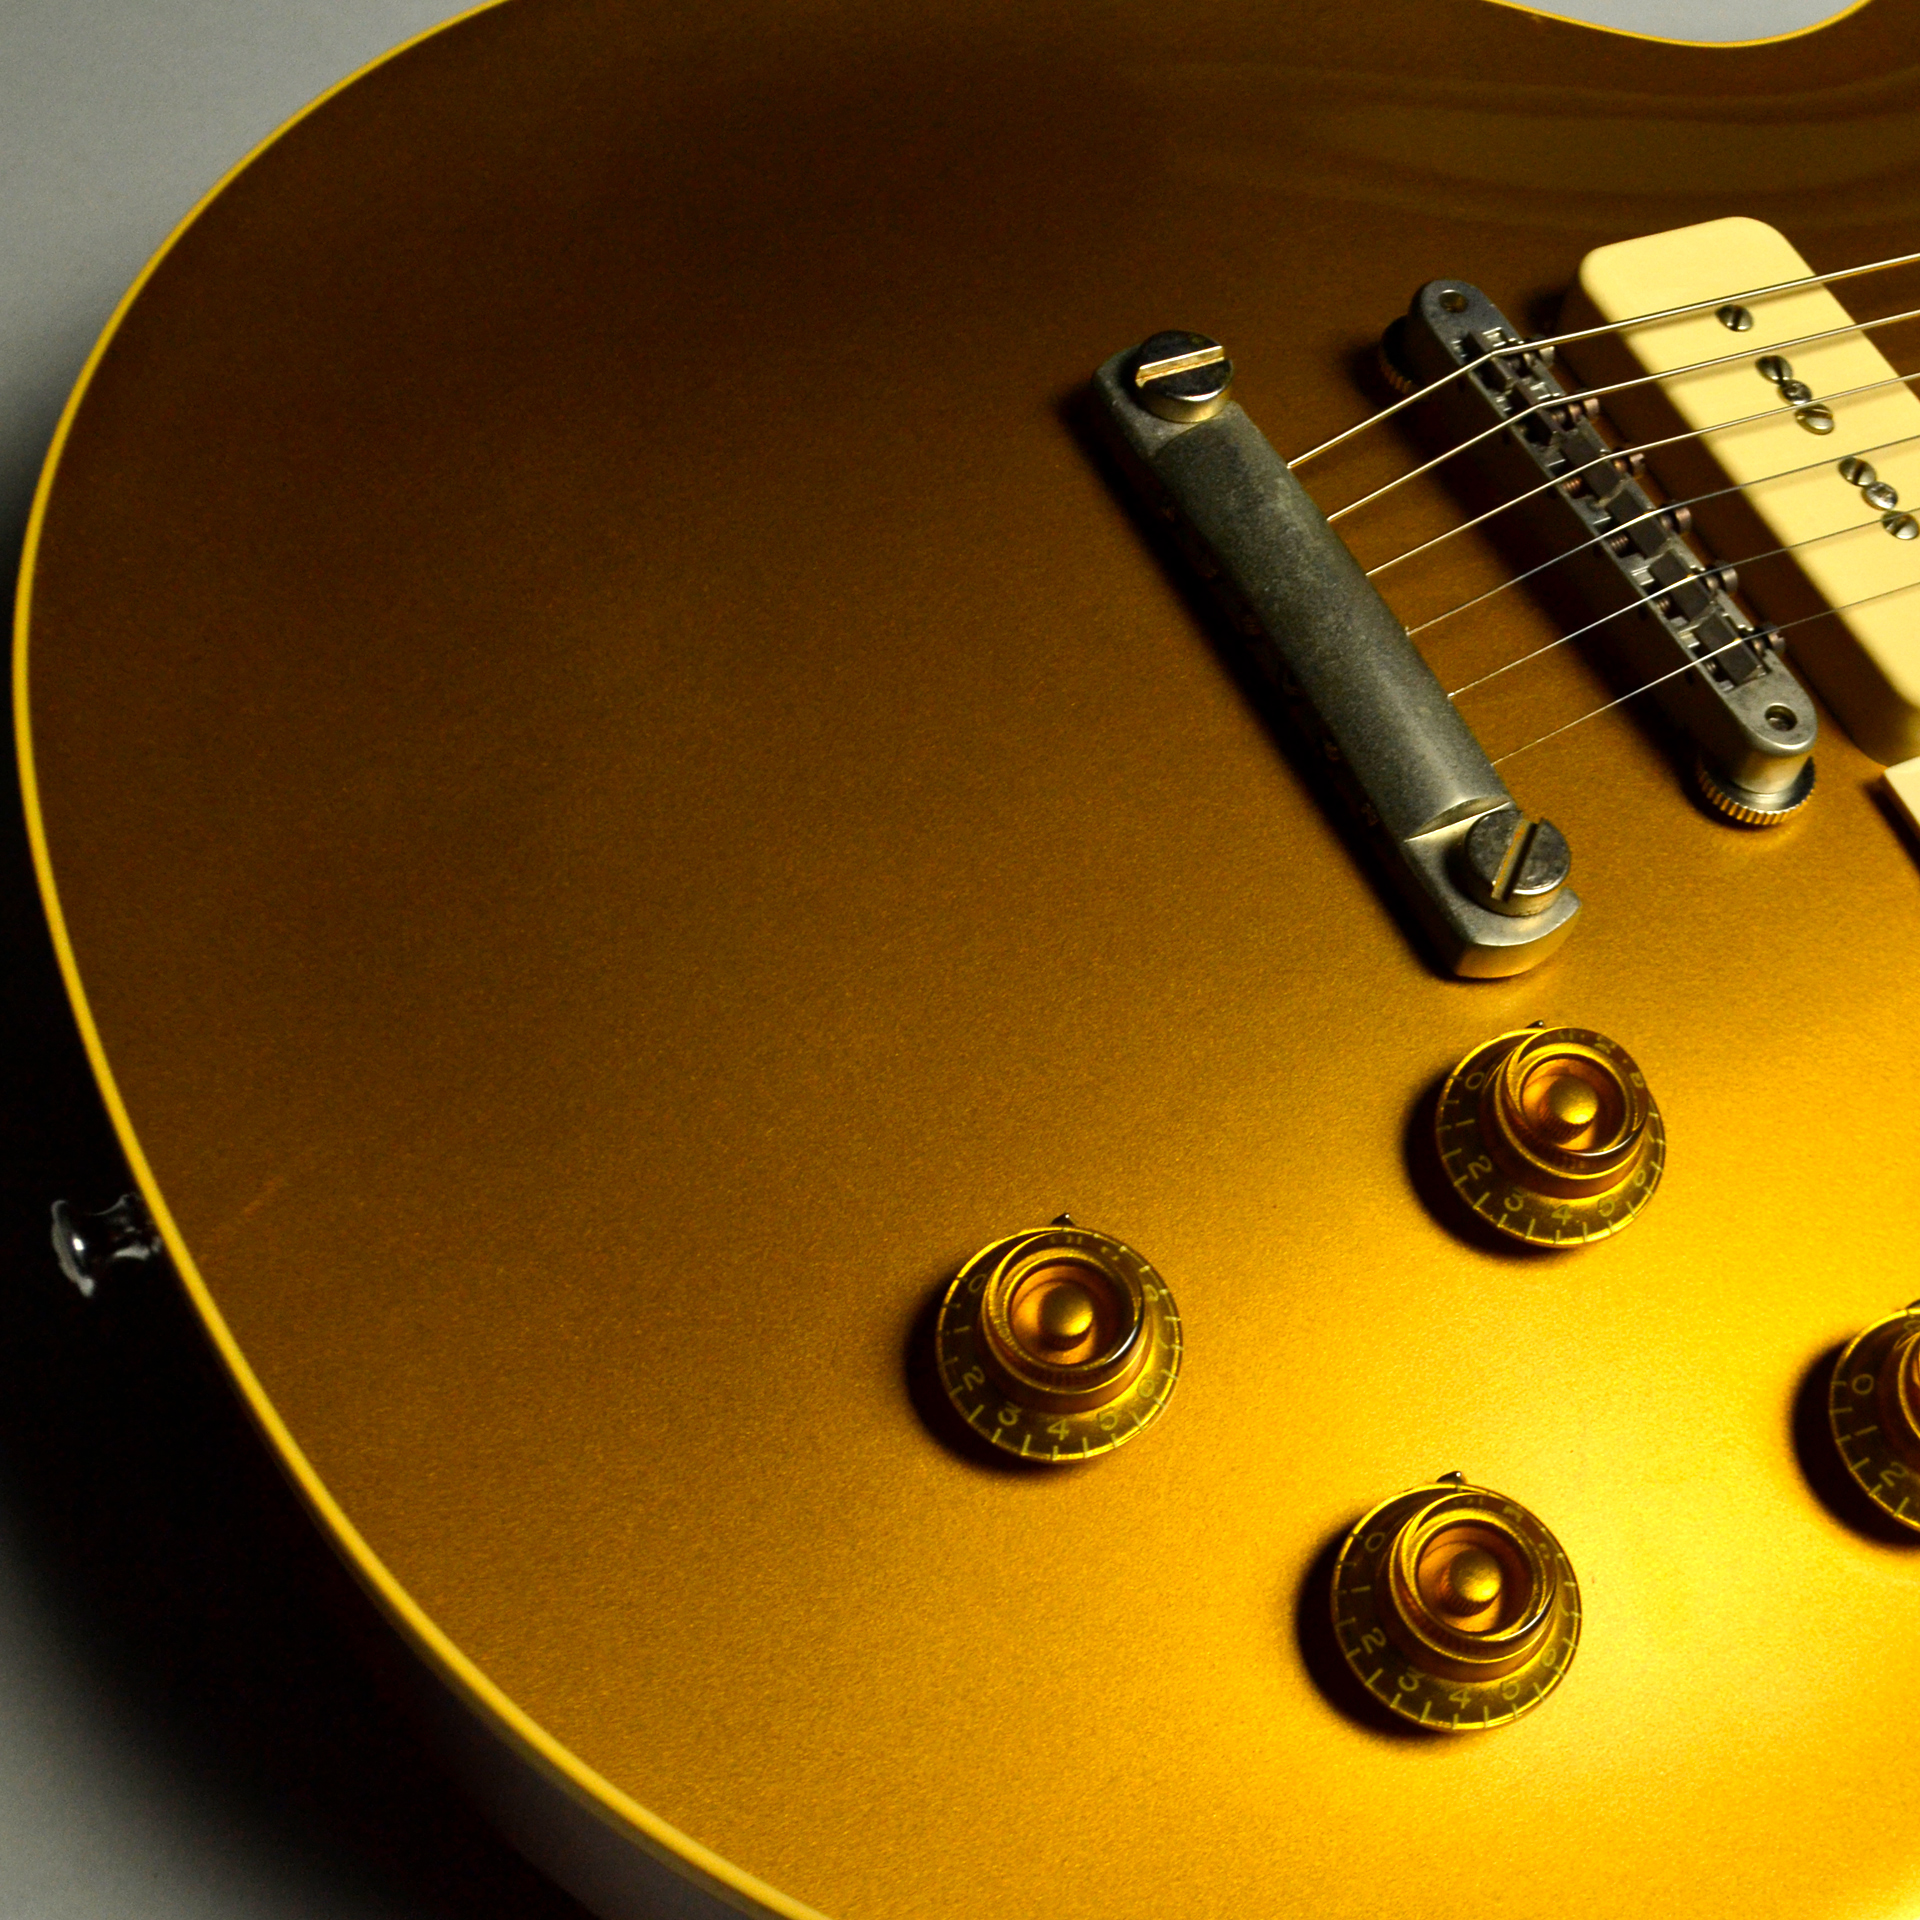 1956 Les Paul Standard Reissue VOS PSL Antique Goldのケース・その他画像